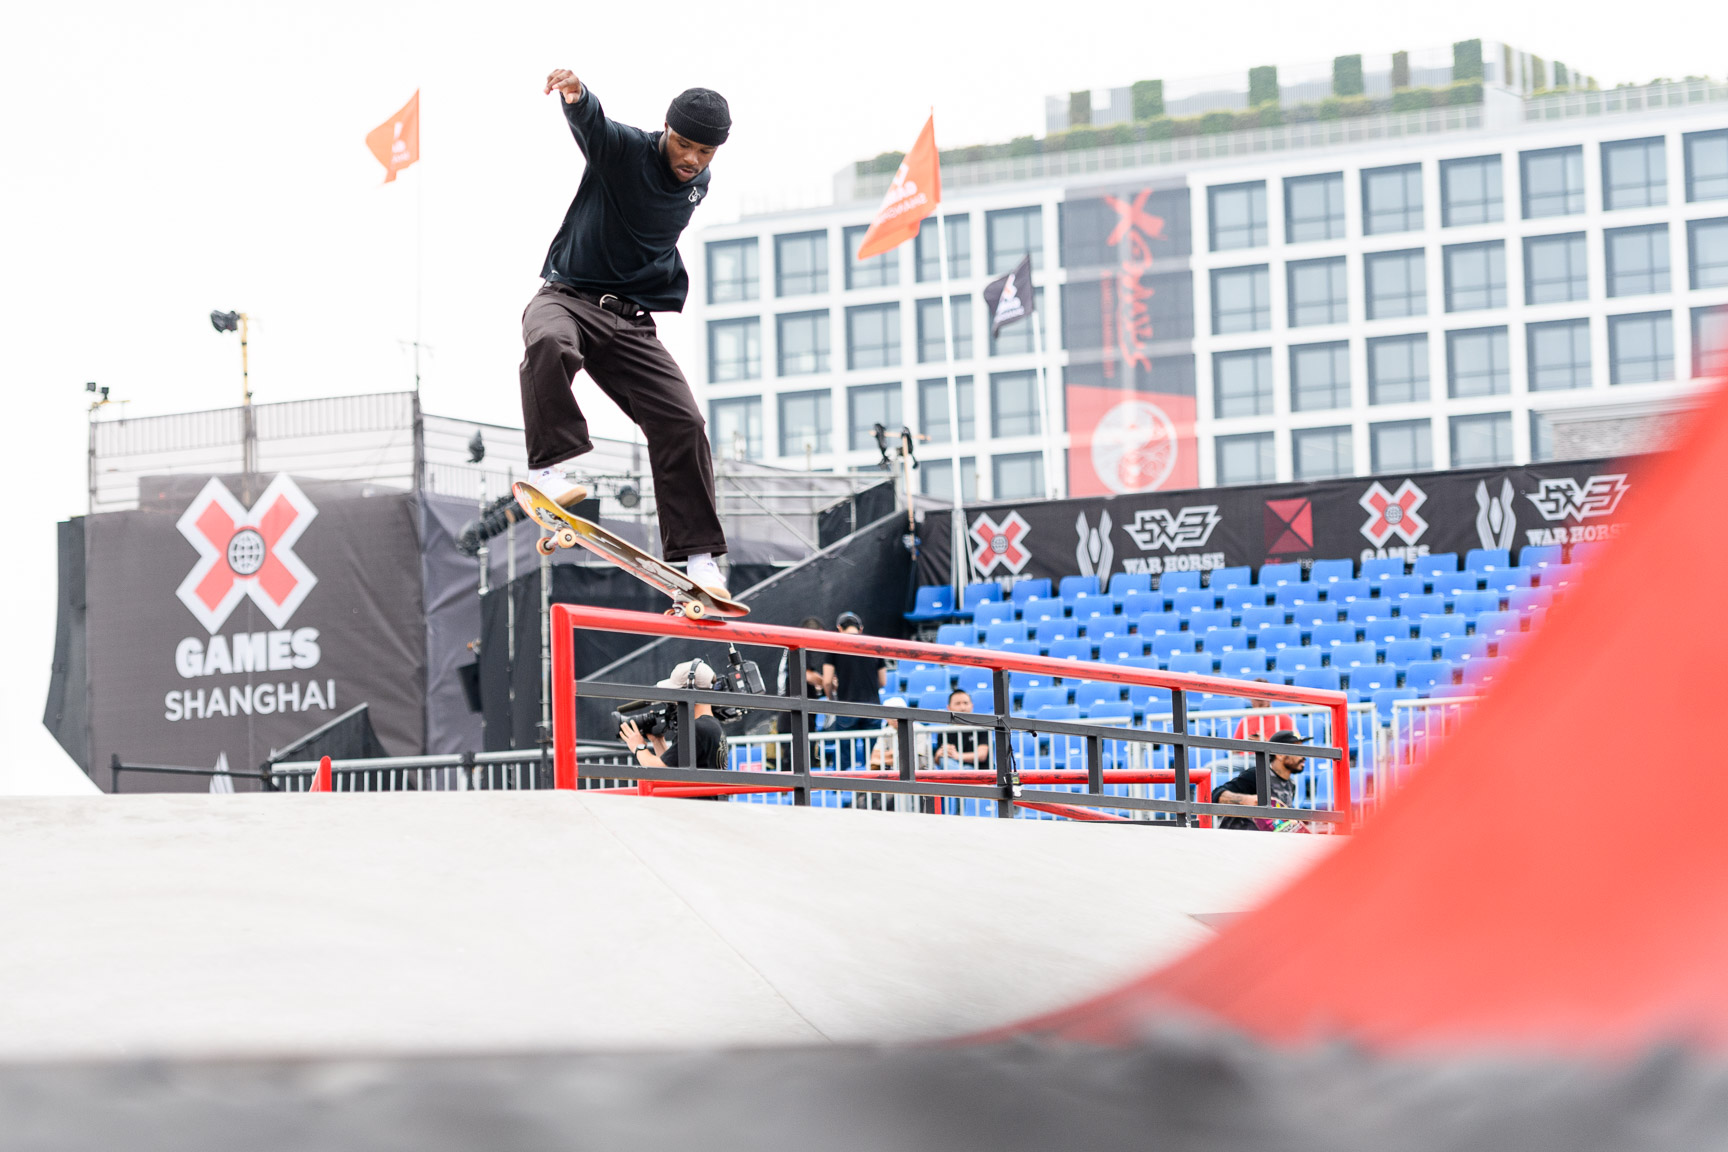 X Games Shanghai 2019: Dashawn Jordan